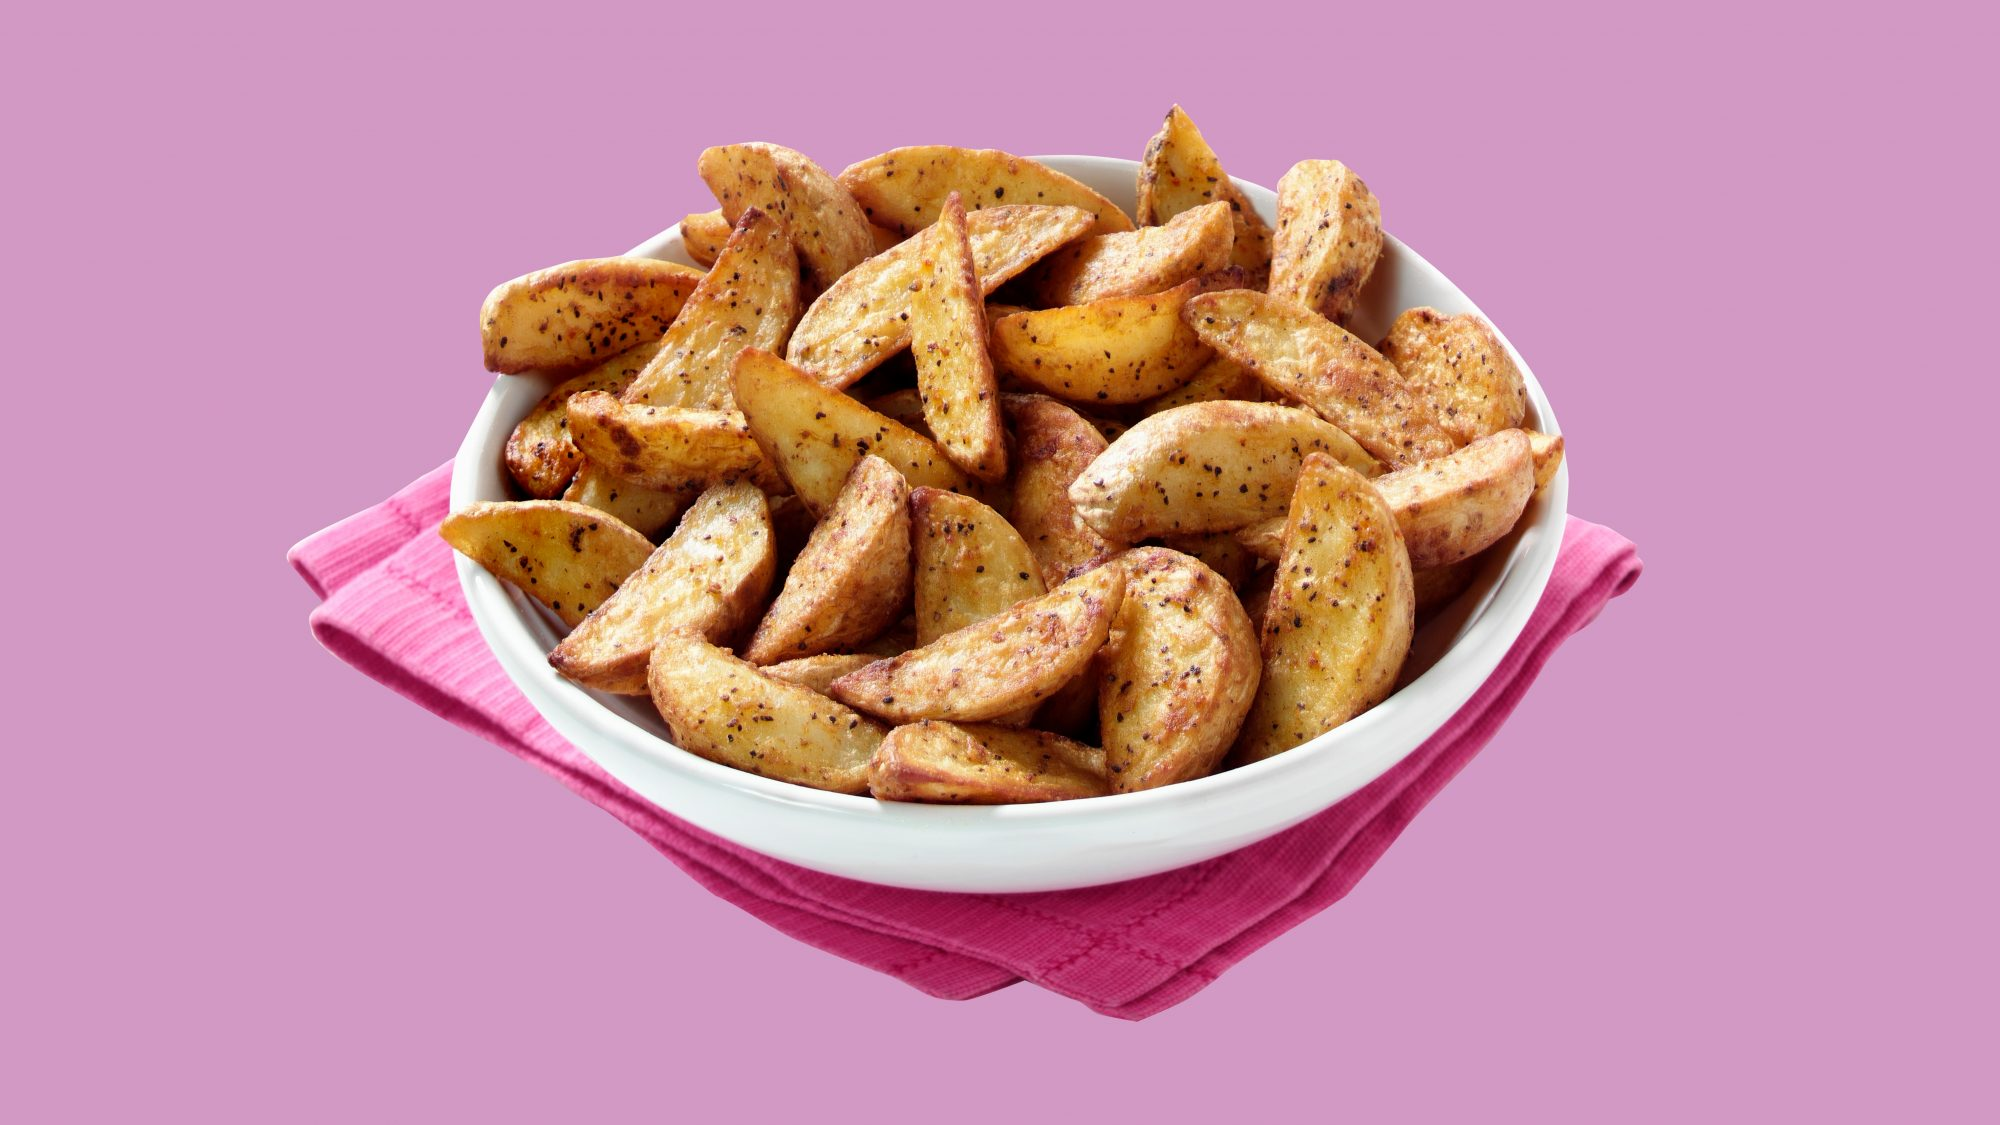 How to Make Air Fryer French Frie